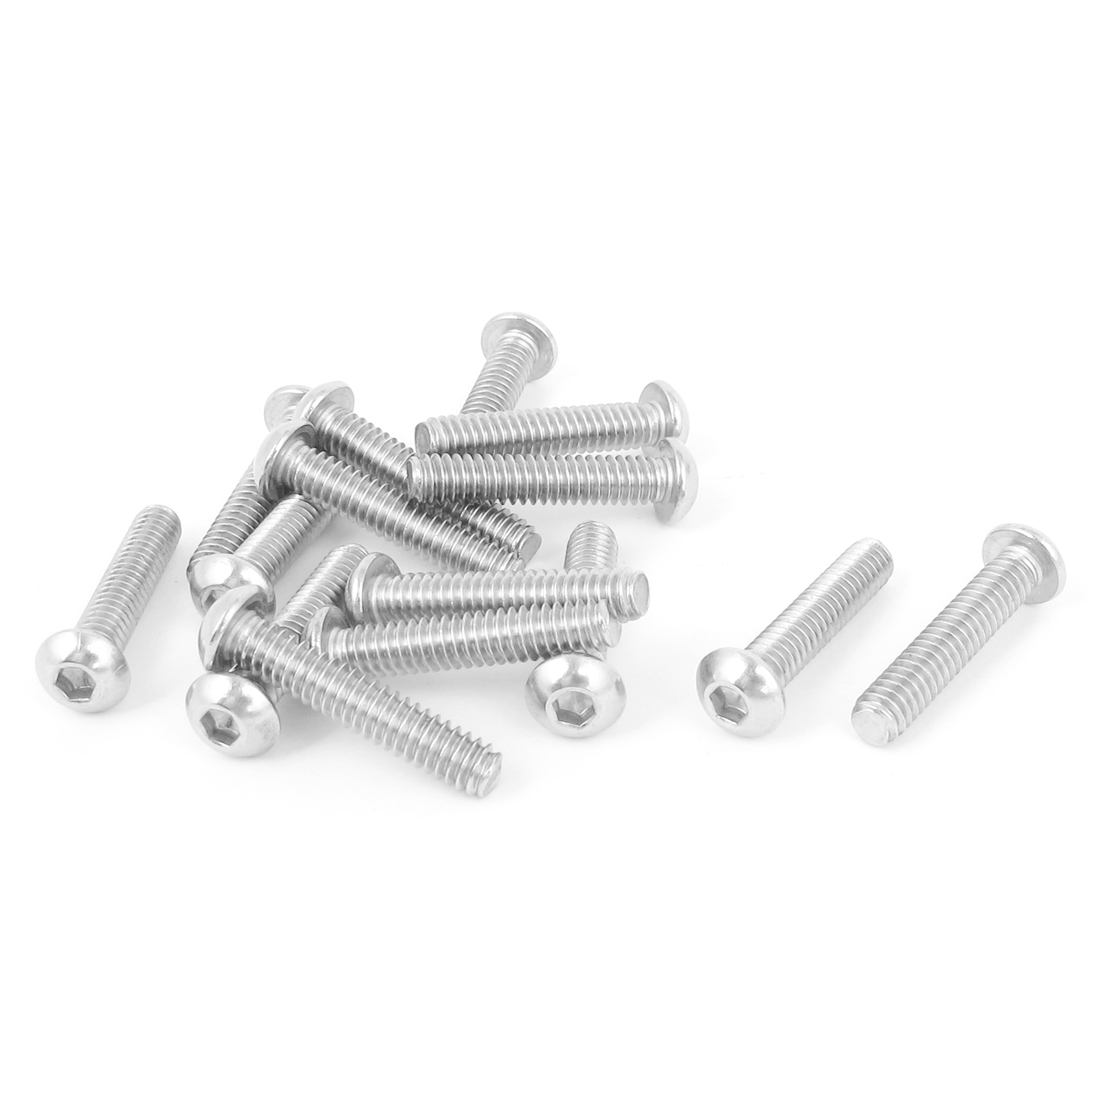 "15pcs 1/4""-20x1-1/4"" Stainless Steel Hex Socket Button Head Bolts Screws"